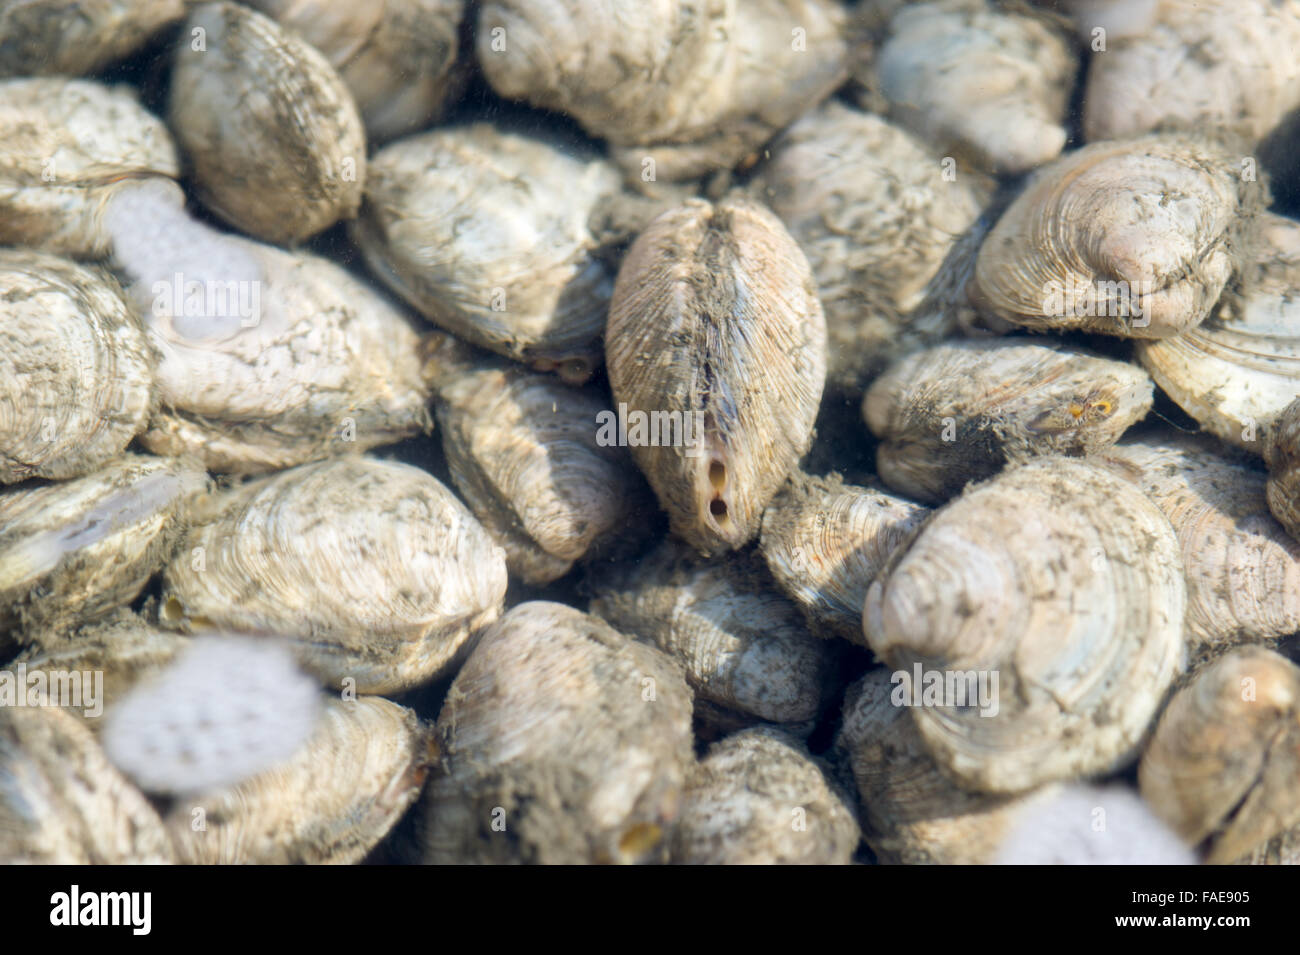 Aquaculture Clam Nursery in Maryland. - Stock Image